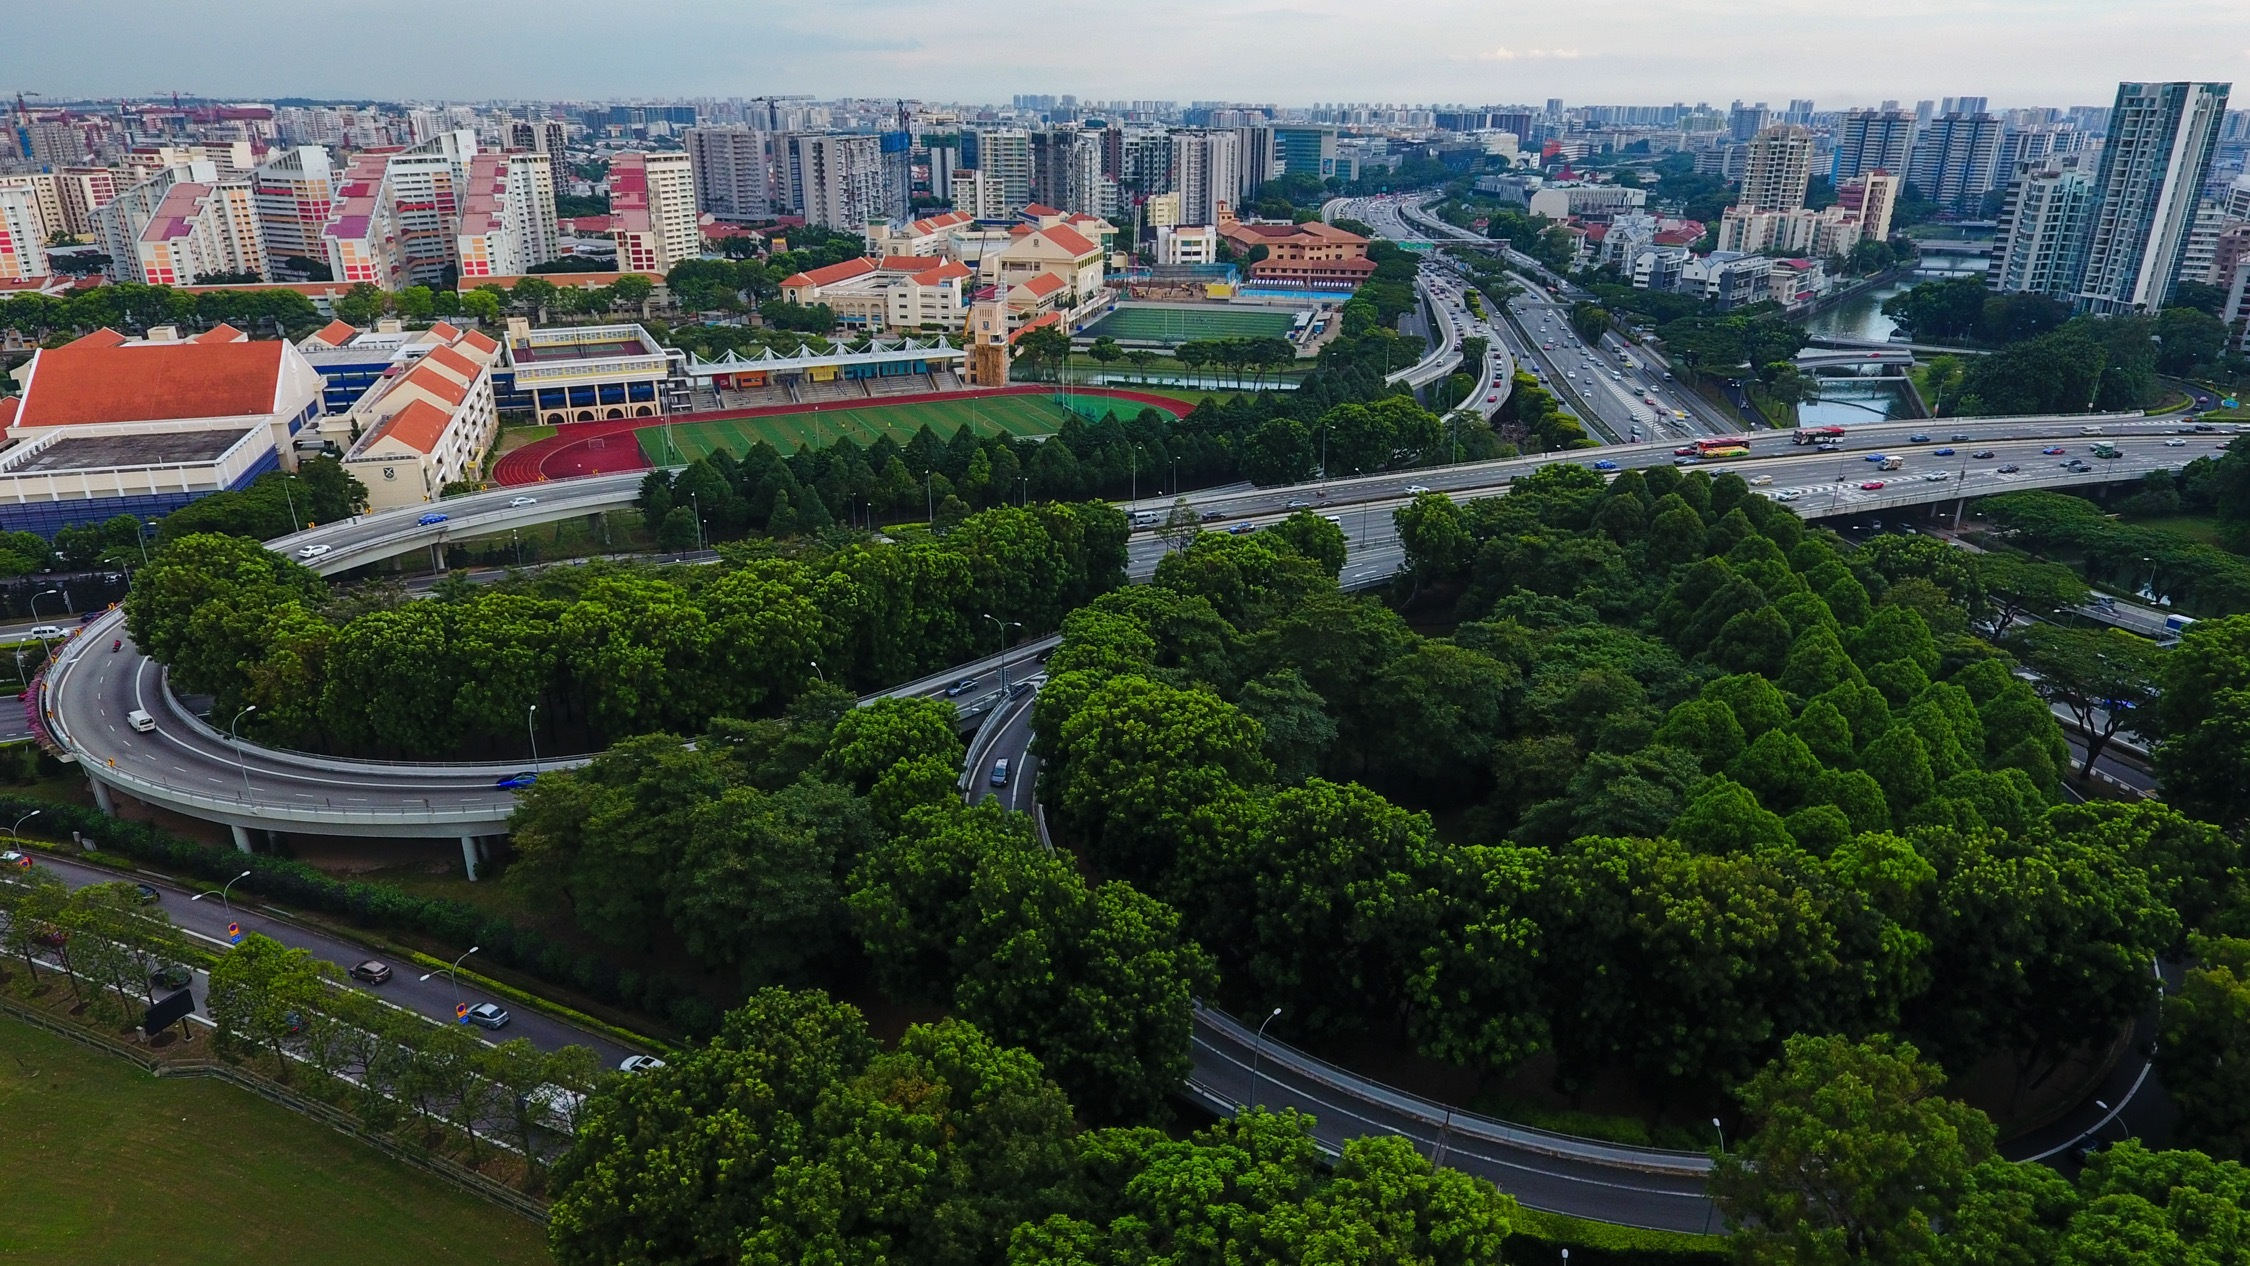 Aerial view of Toa Payoh